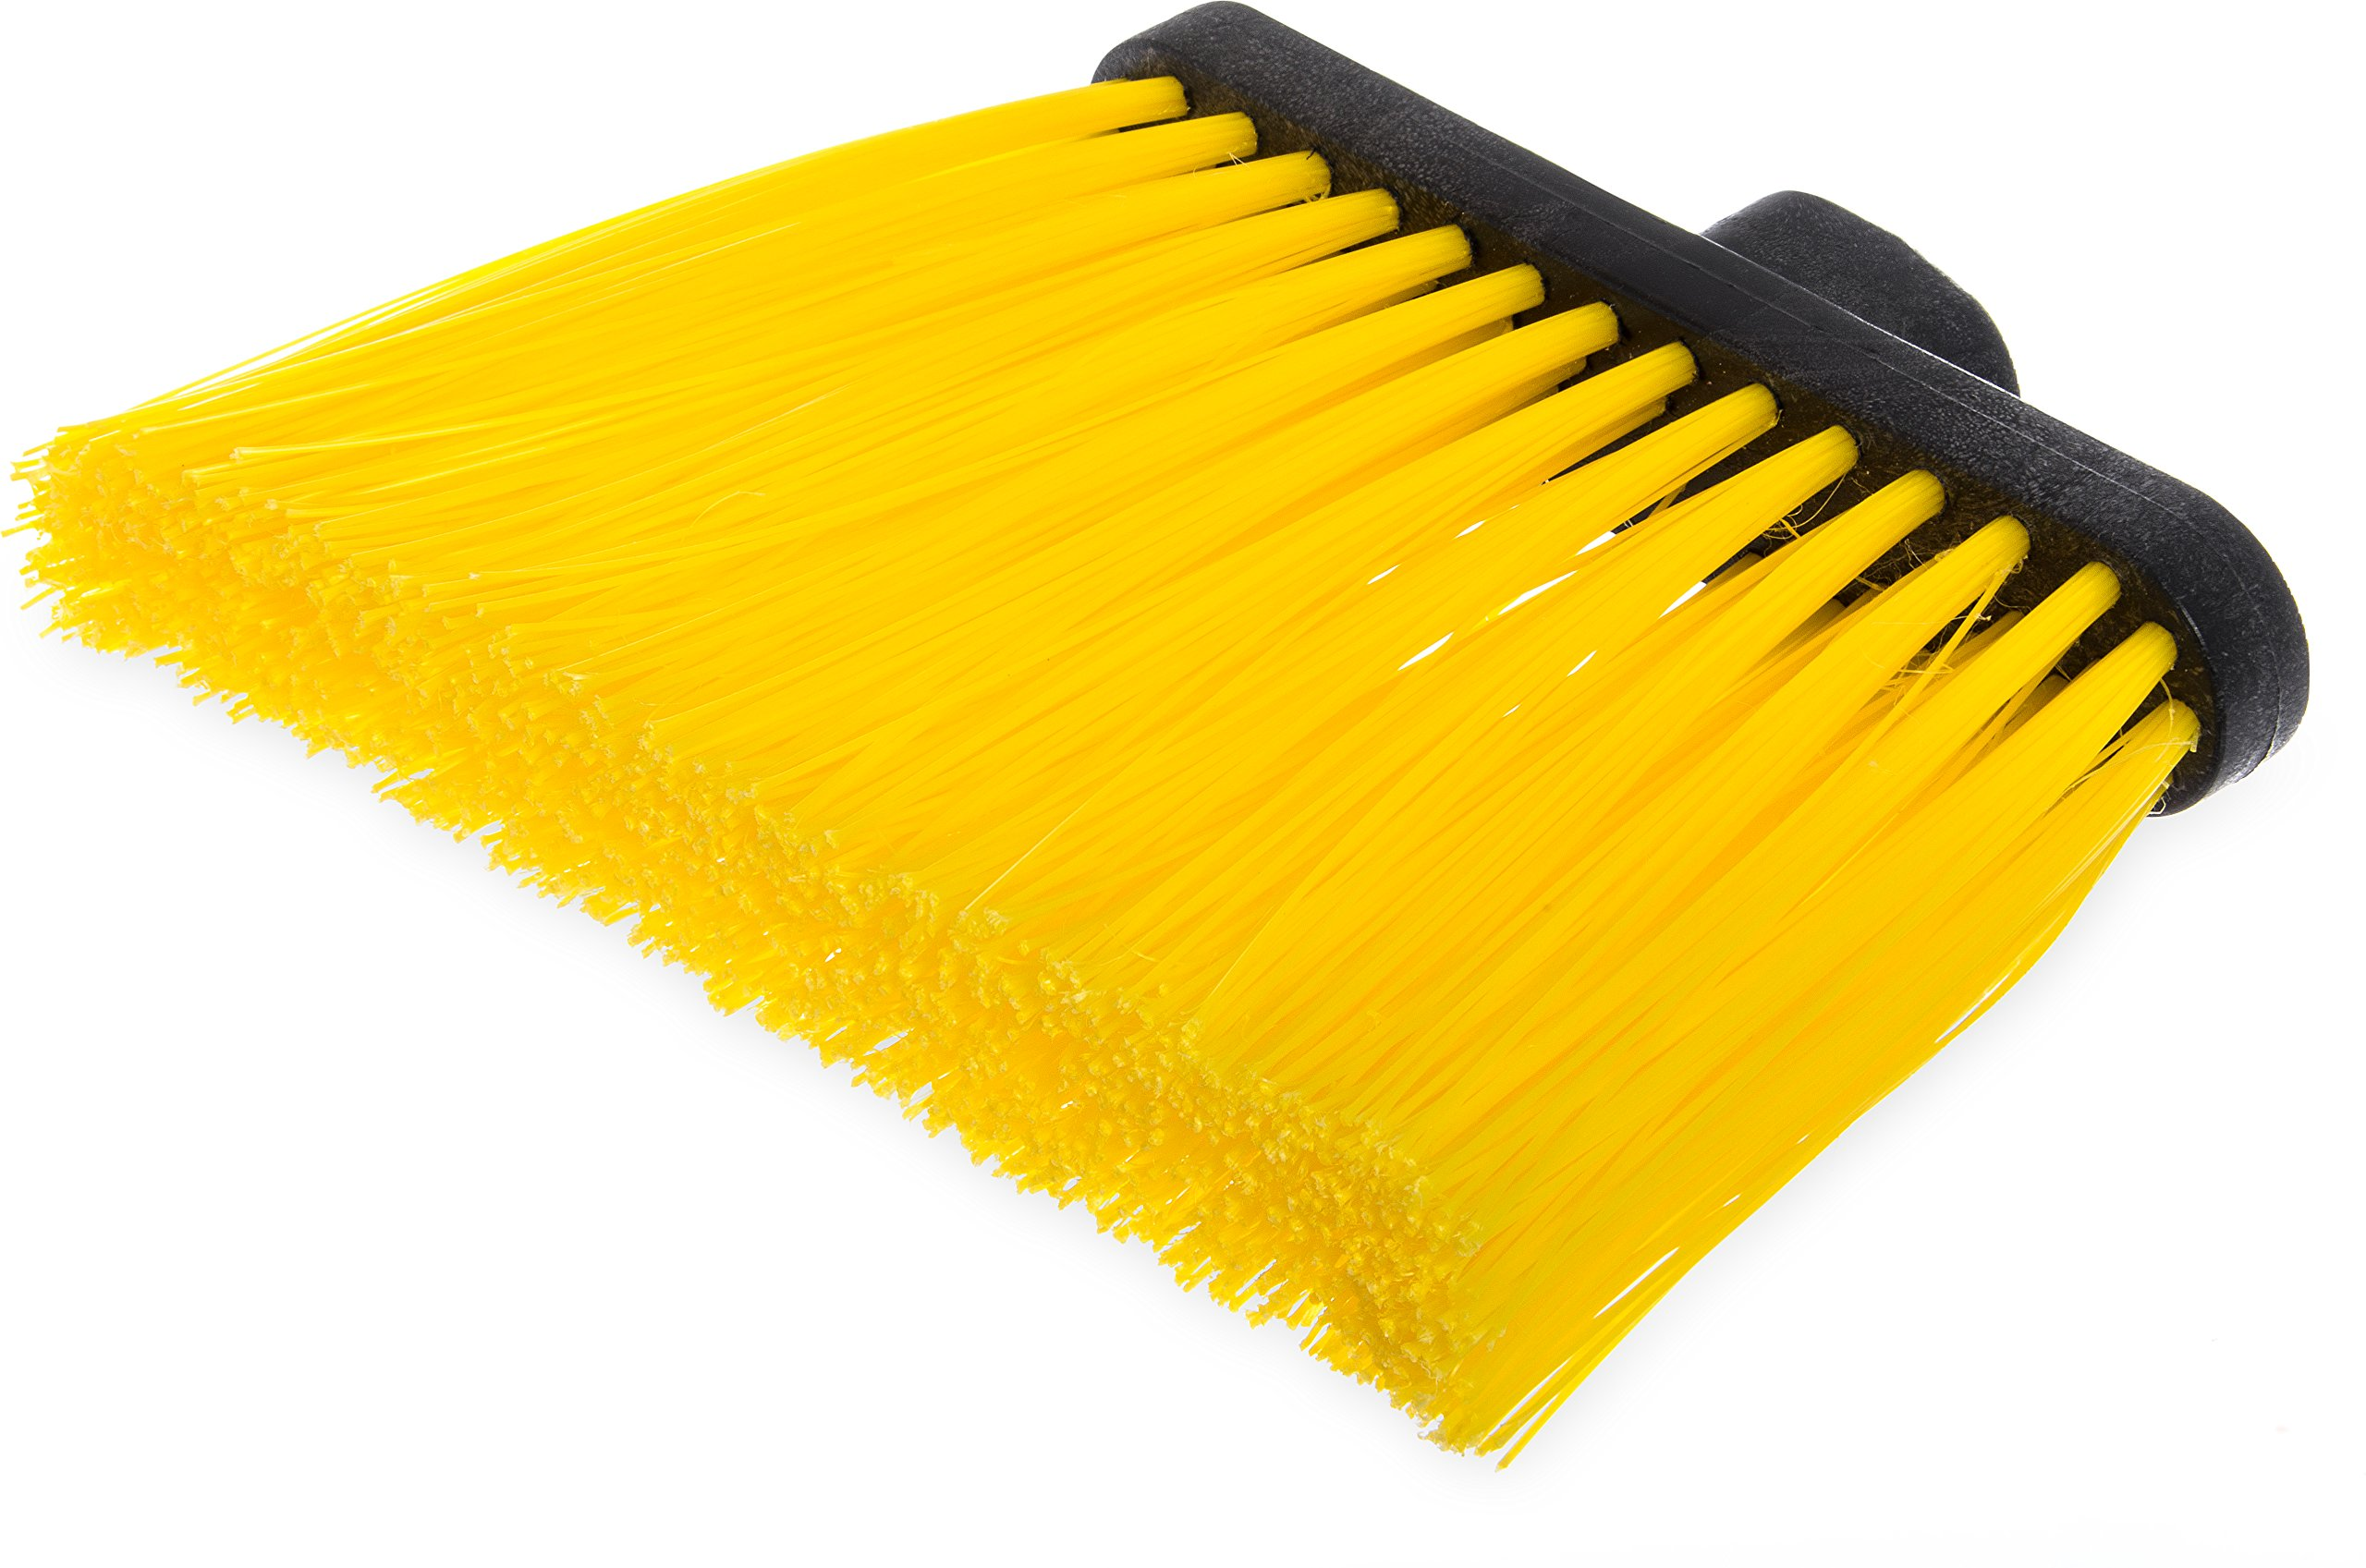 Carlisle 3686804 Duo-Sweep UnFlagged Angle Broom Head, 8'', Yellow (Pack of 12) by Carlisle (Image #1)